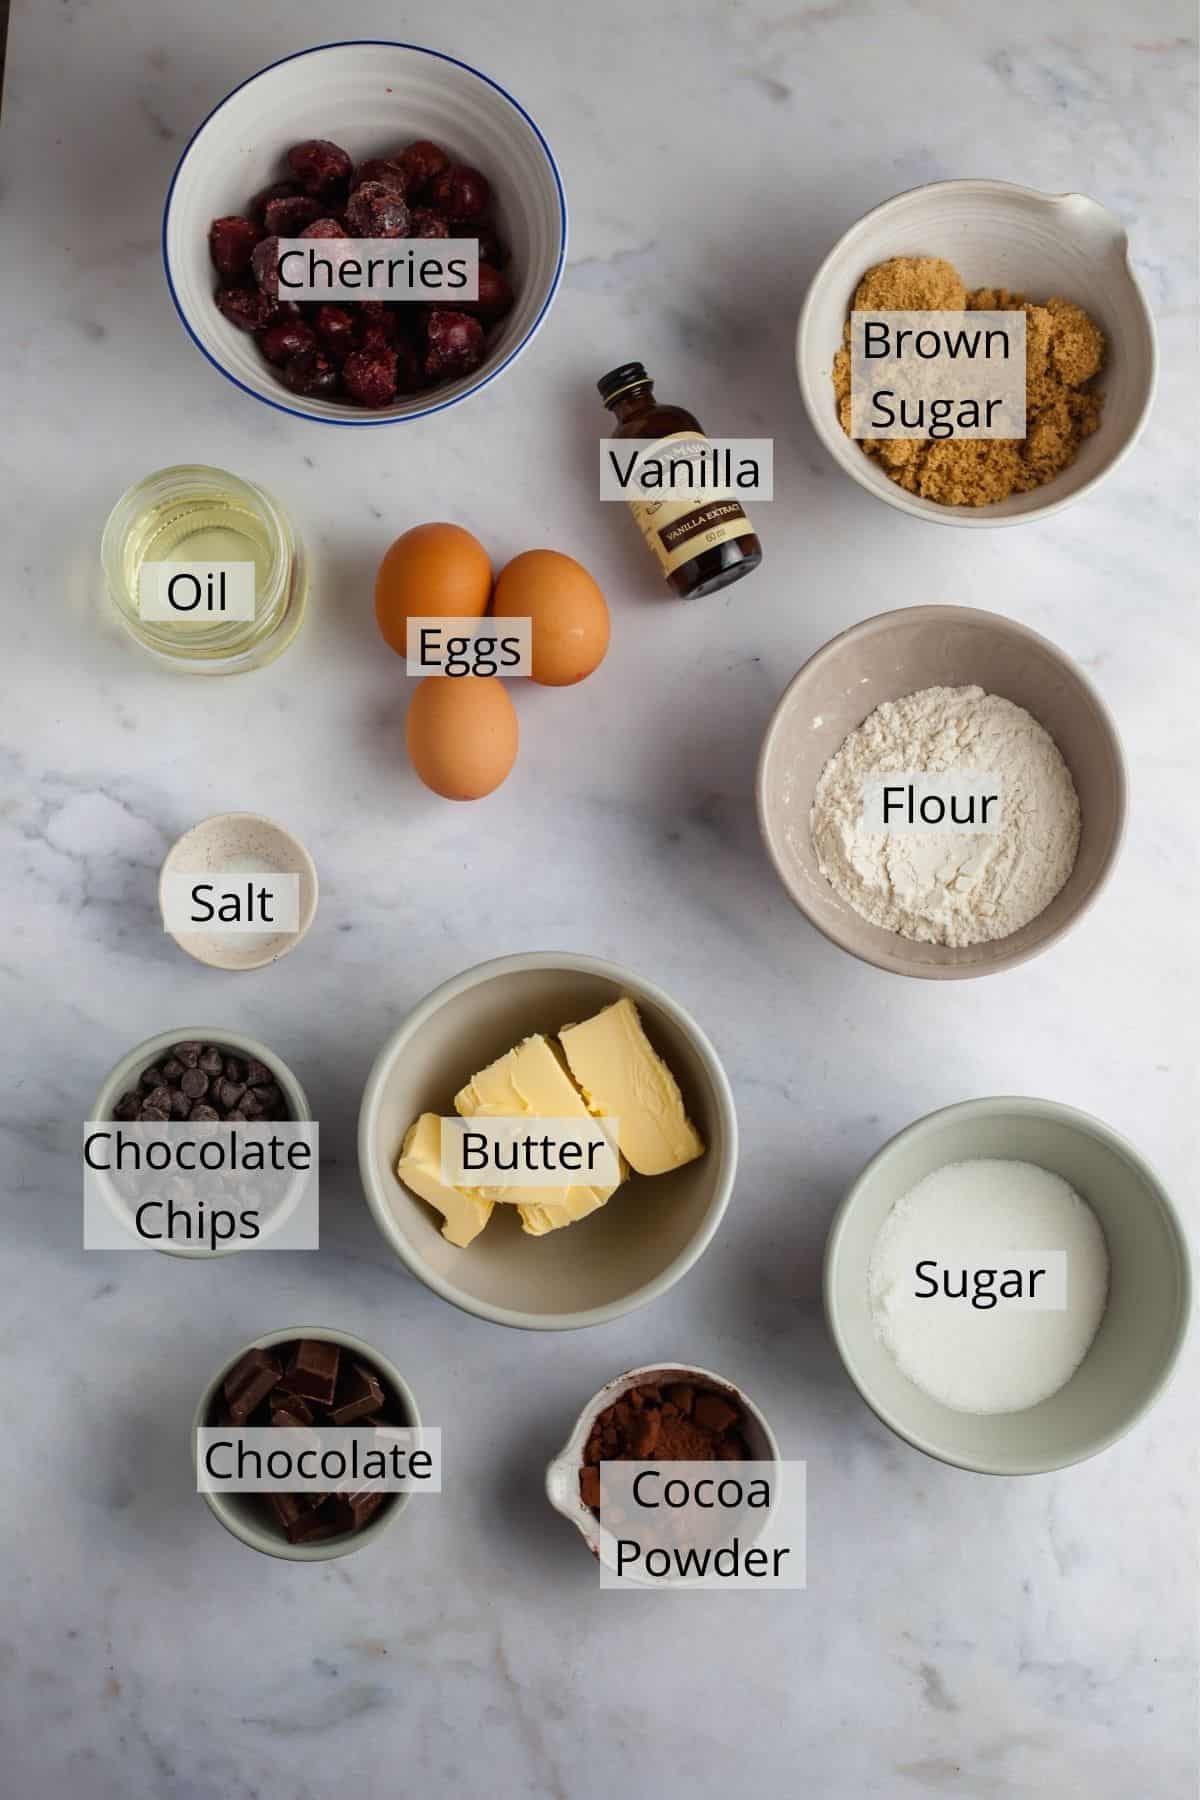 All the ingredients needed for cherry brownies weighed out in small bowls.